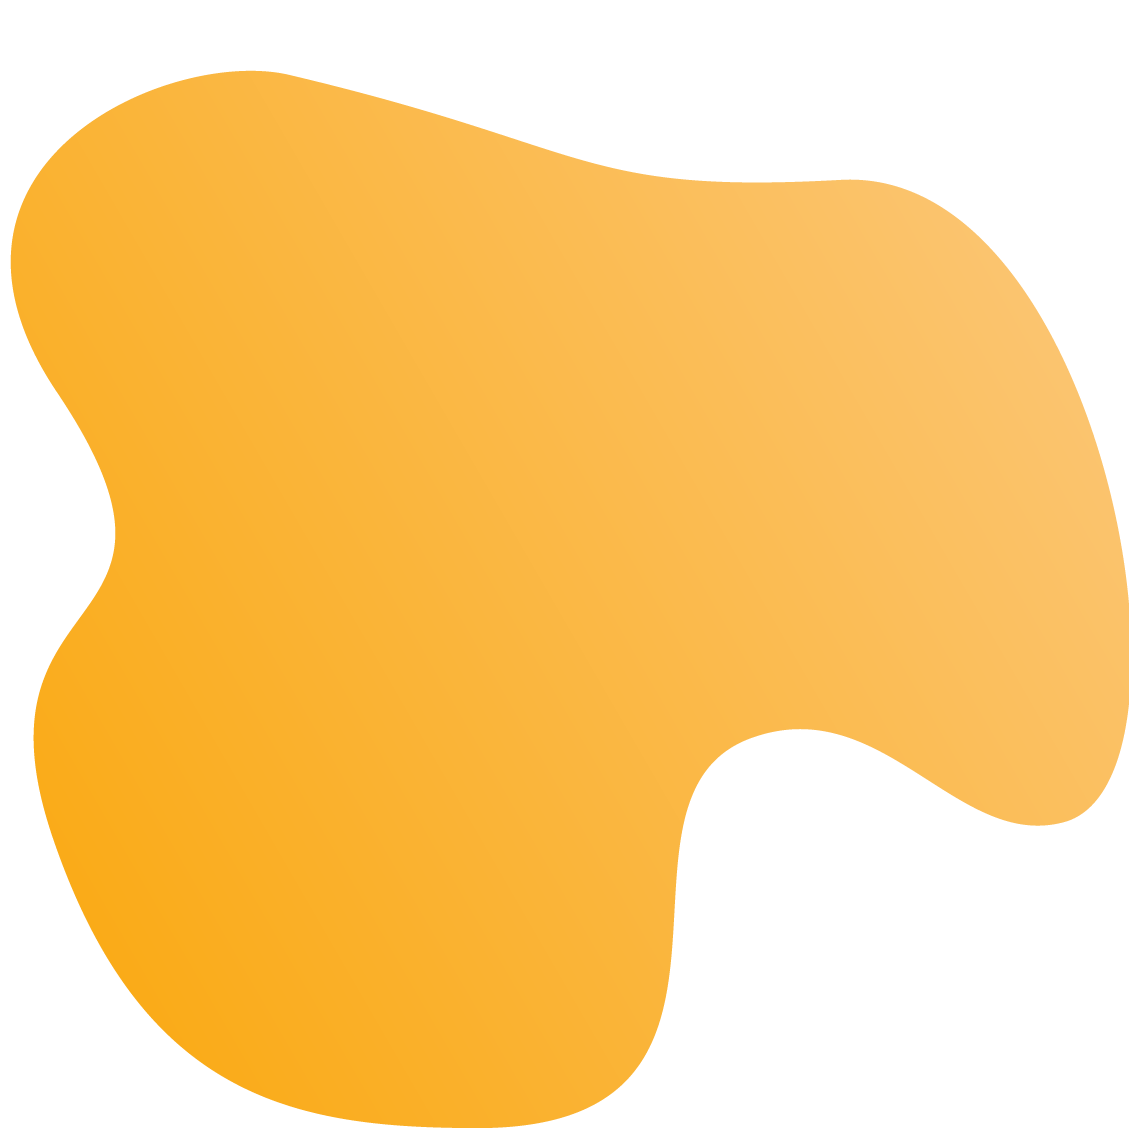 A yellow blob image used in backgrounds